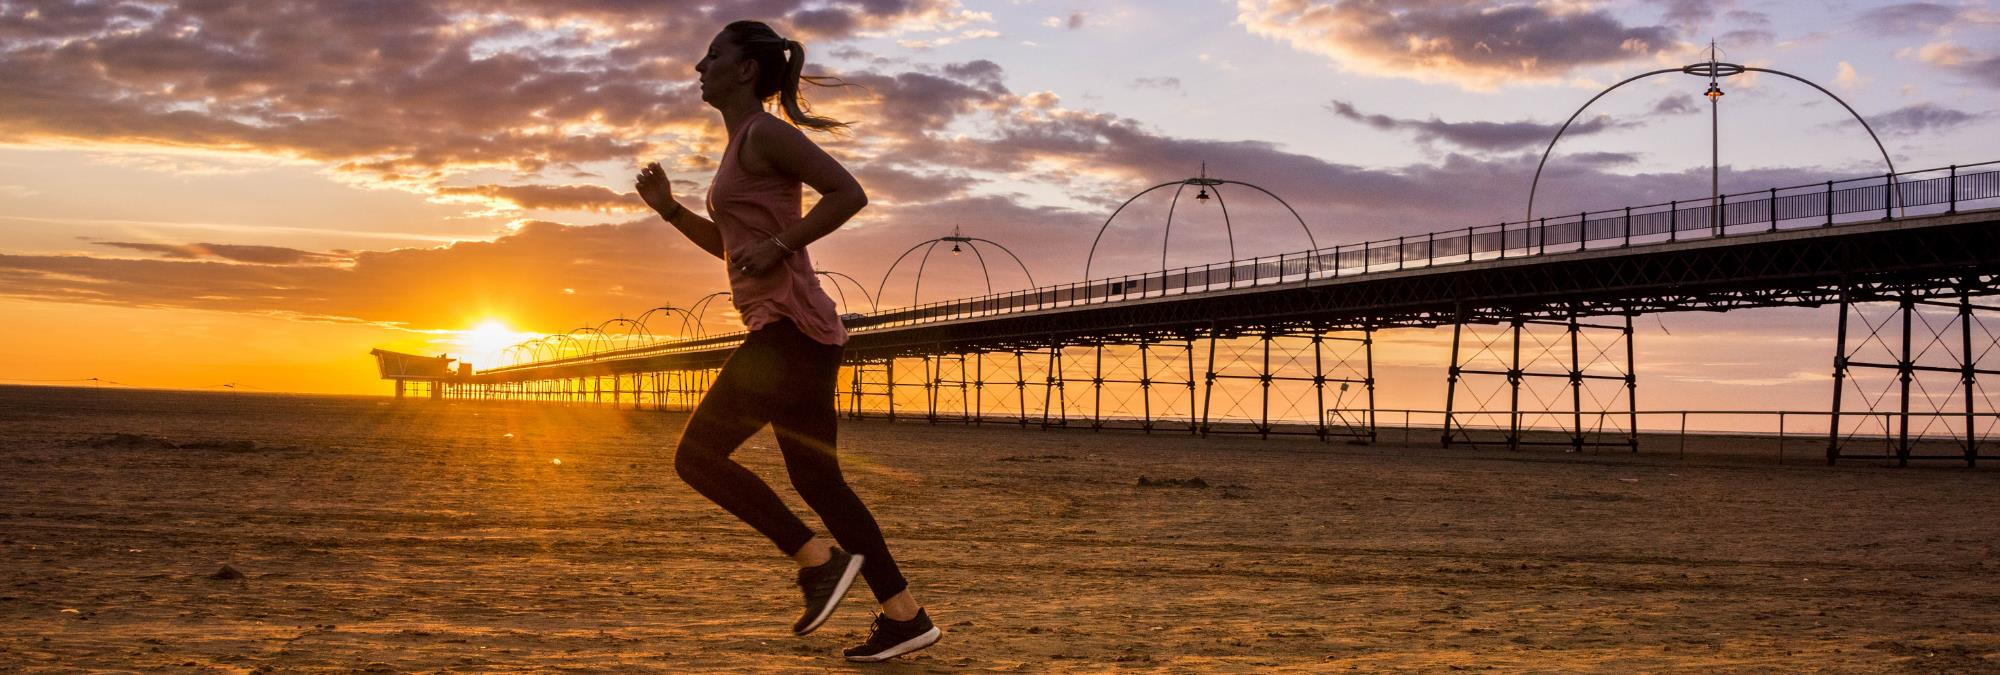 Southport Pier and Beach at Sunset. A lady is running along the beach with the orange sunset in the background.